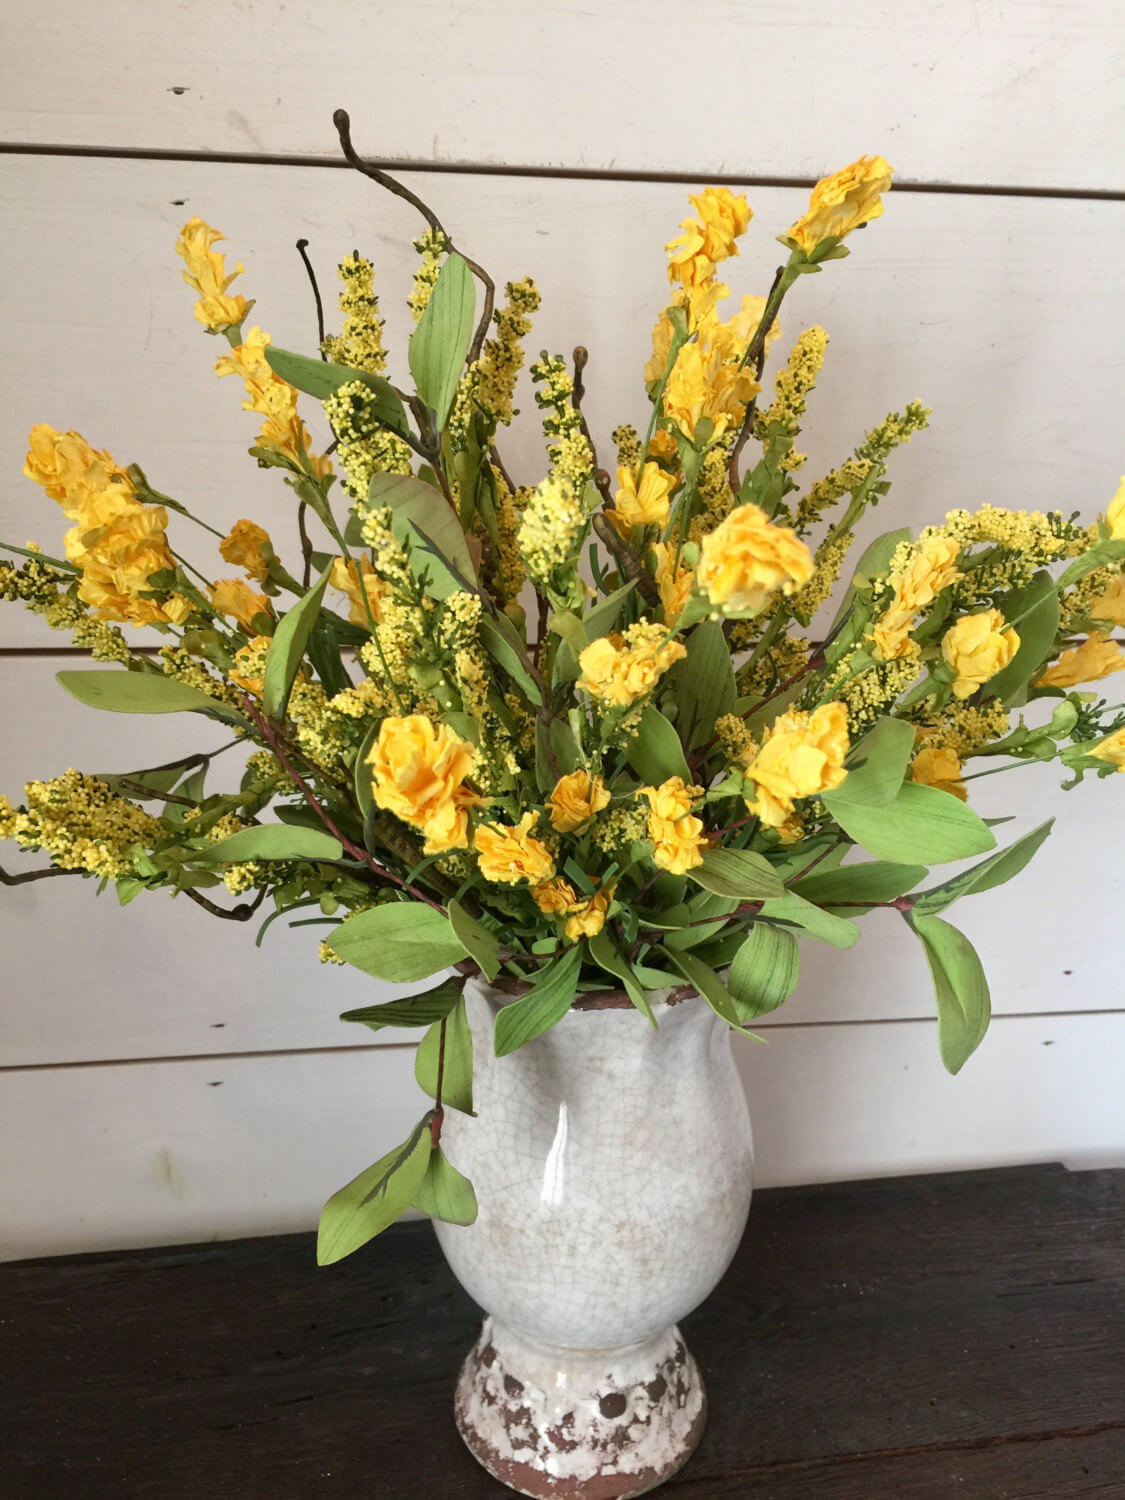 A Bright Yellow Summer Flower Arrangement